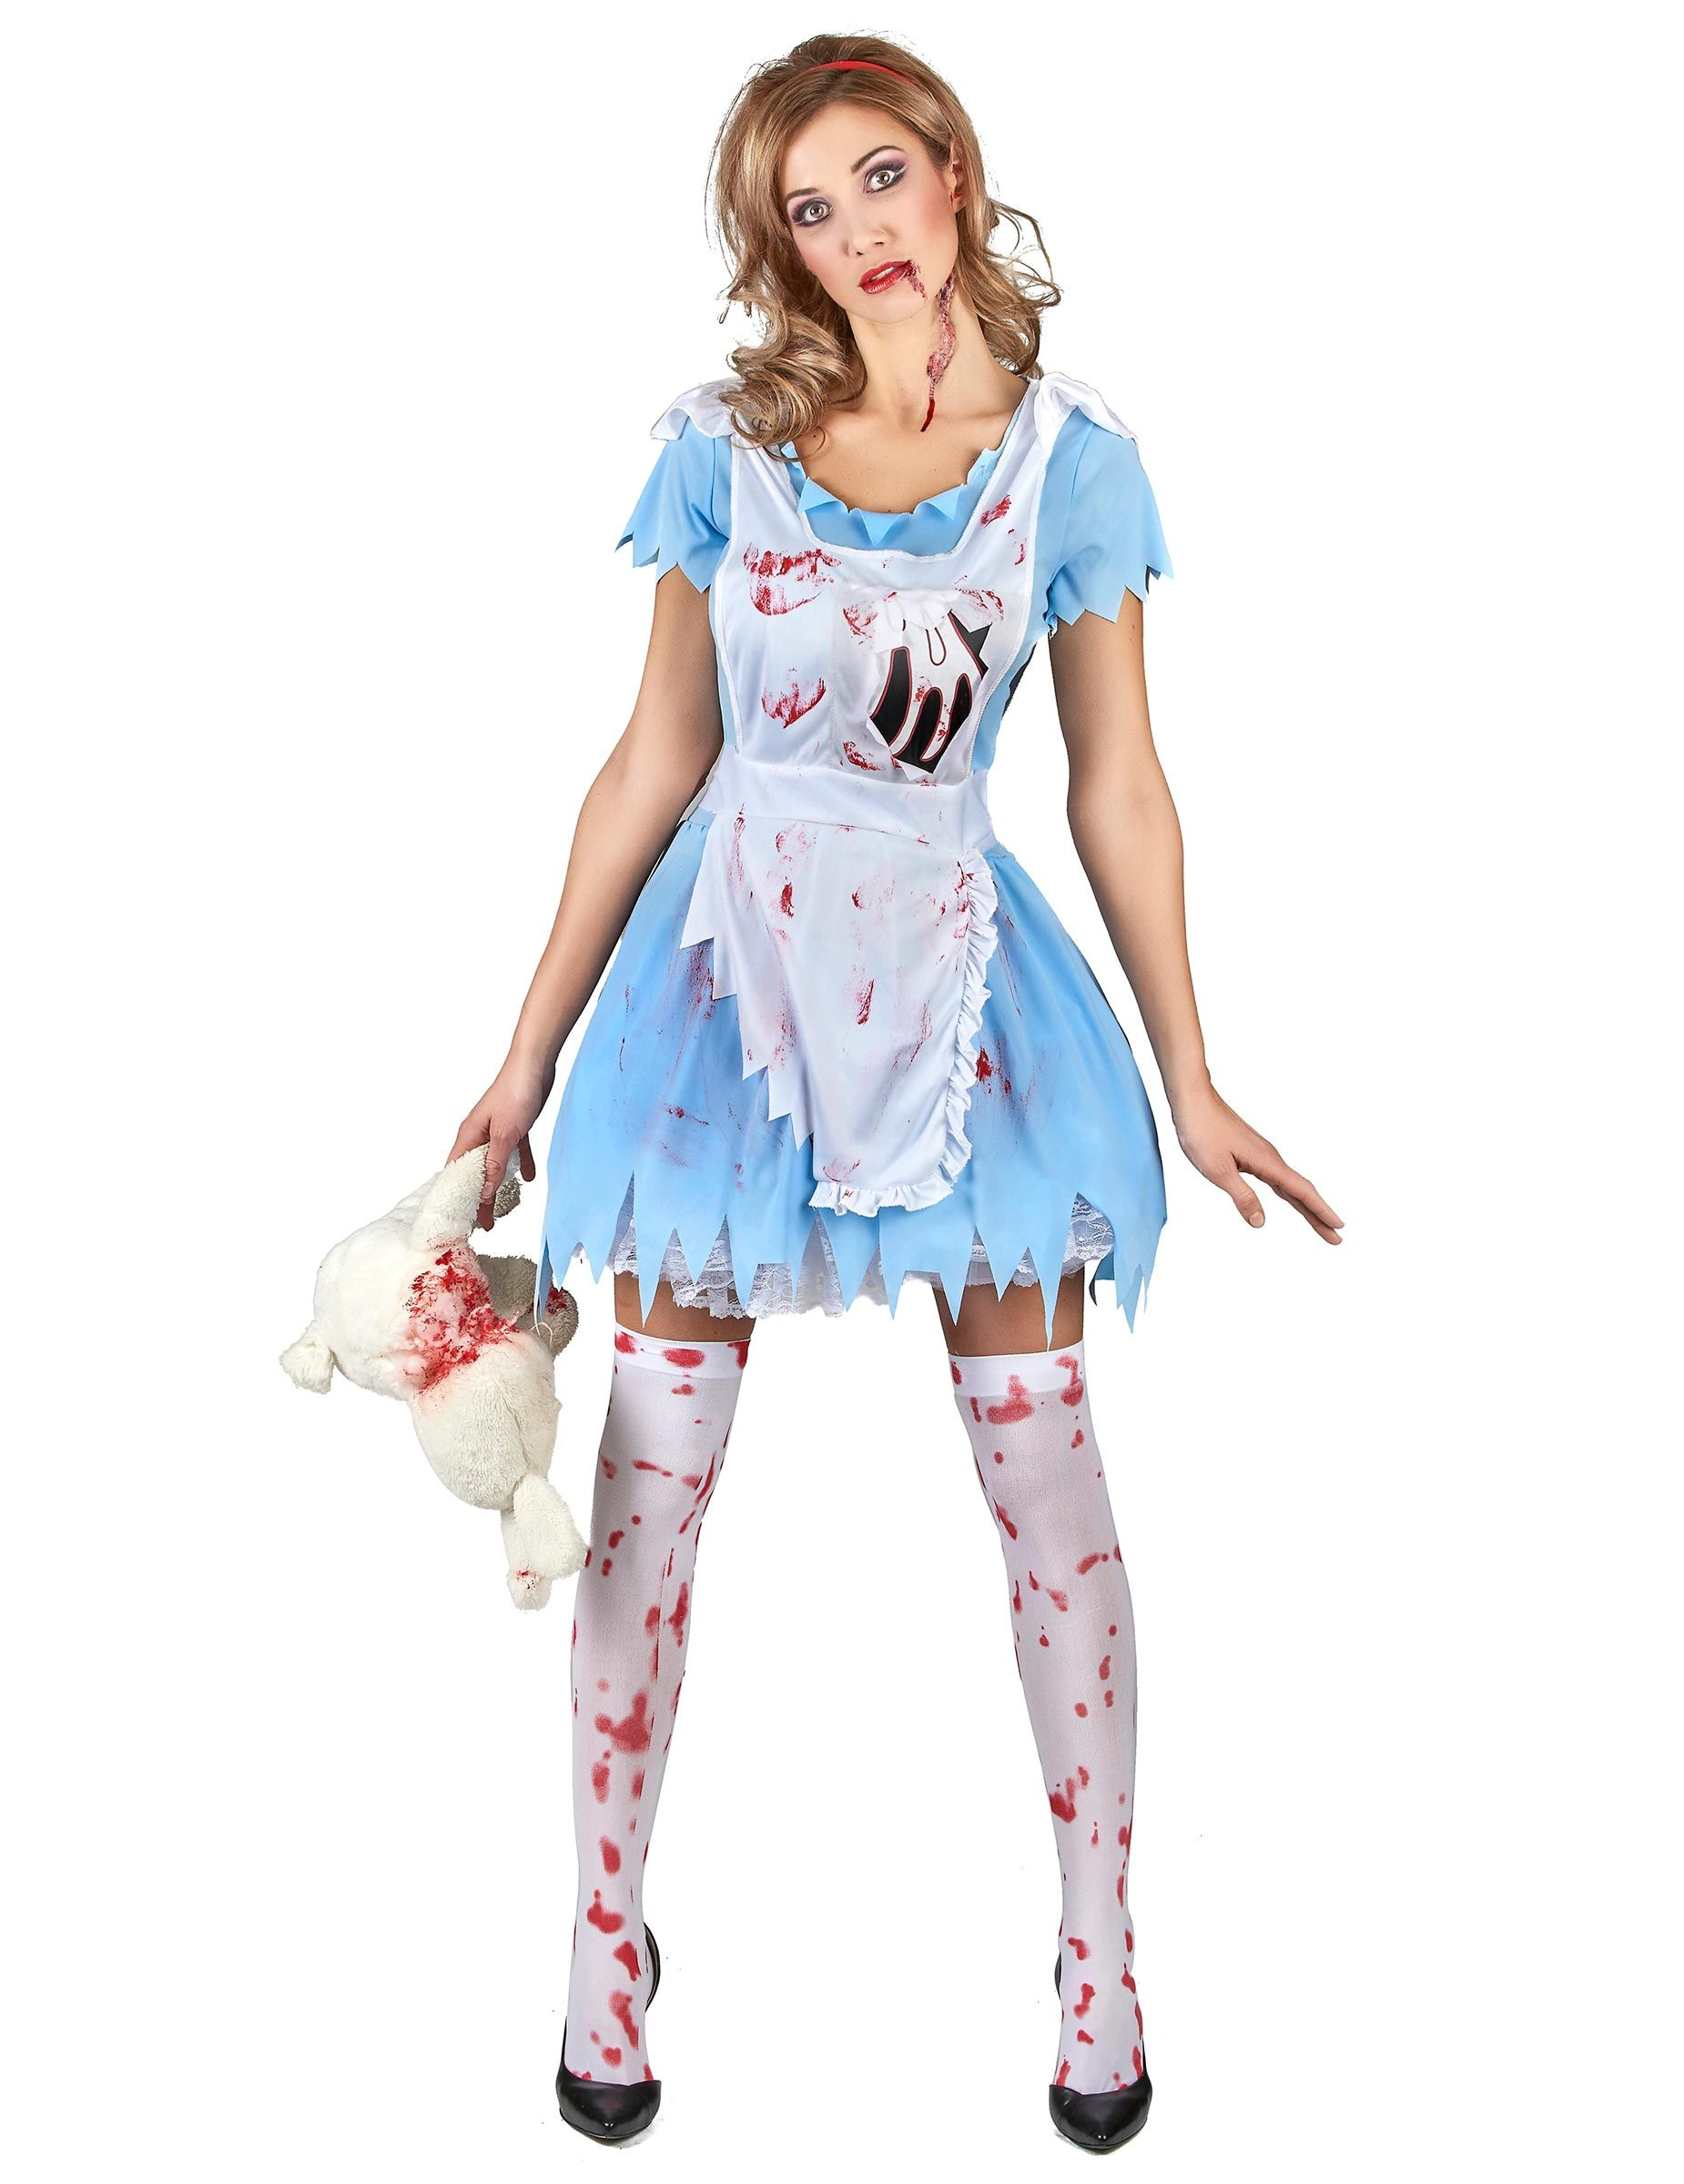 Alice Halloweenkostum Horrormarchen Kostum Blau Weiss Rot In 2020